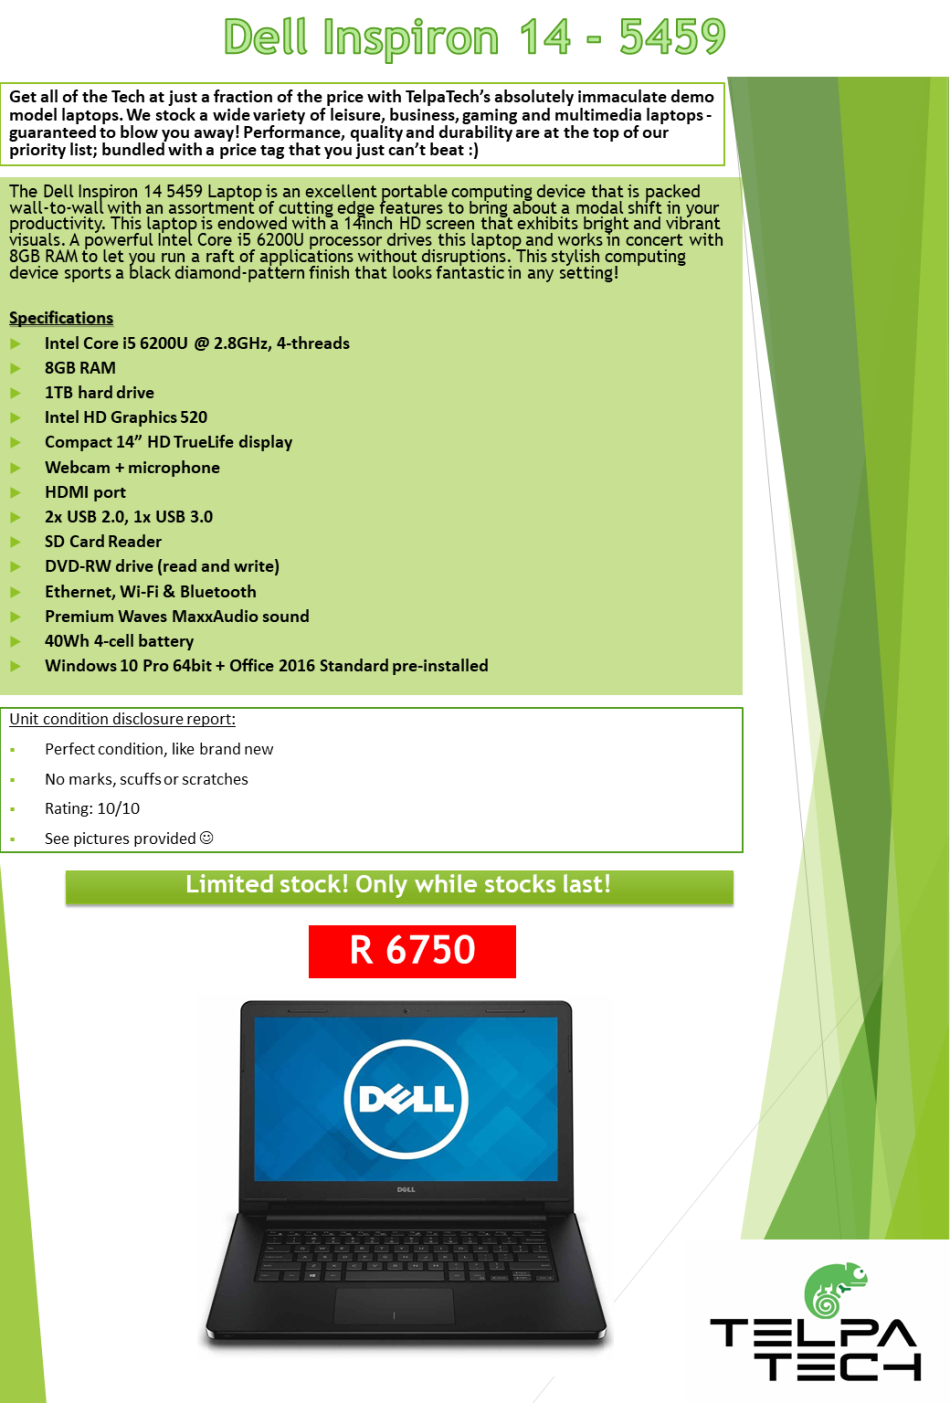 Laptops & Notebooks - CLEARANCE SALE: Dell Inspiron 14